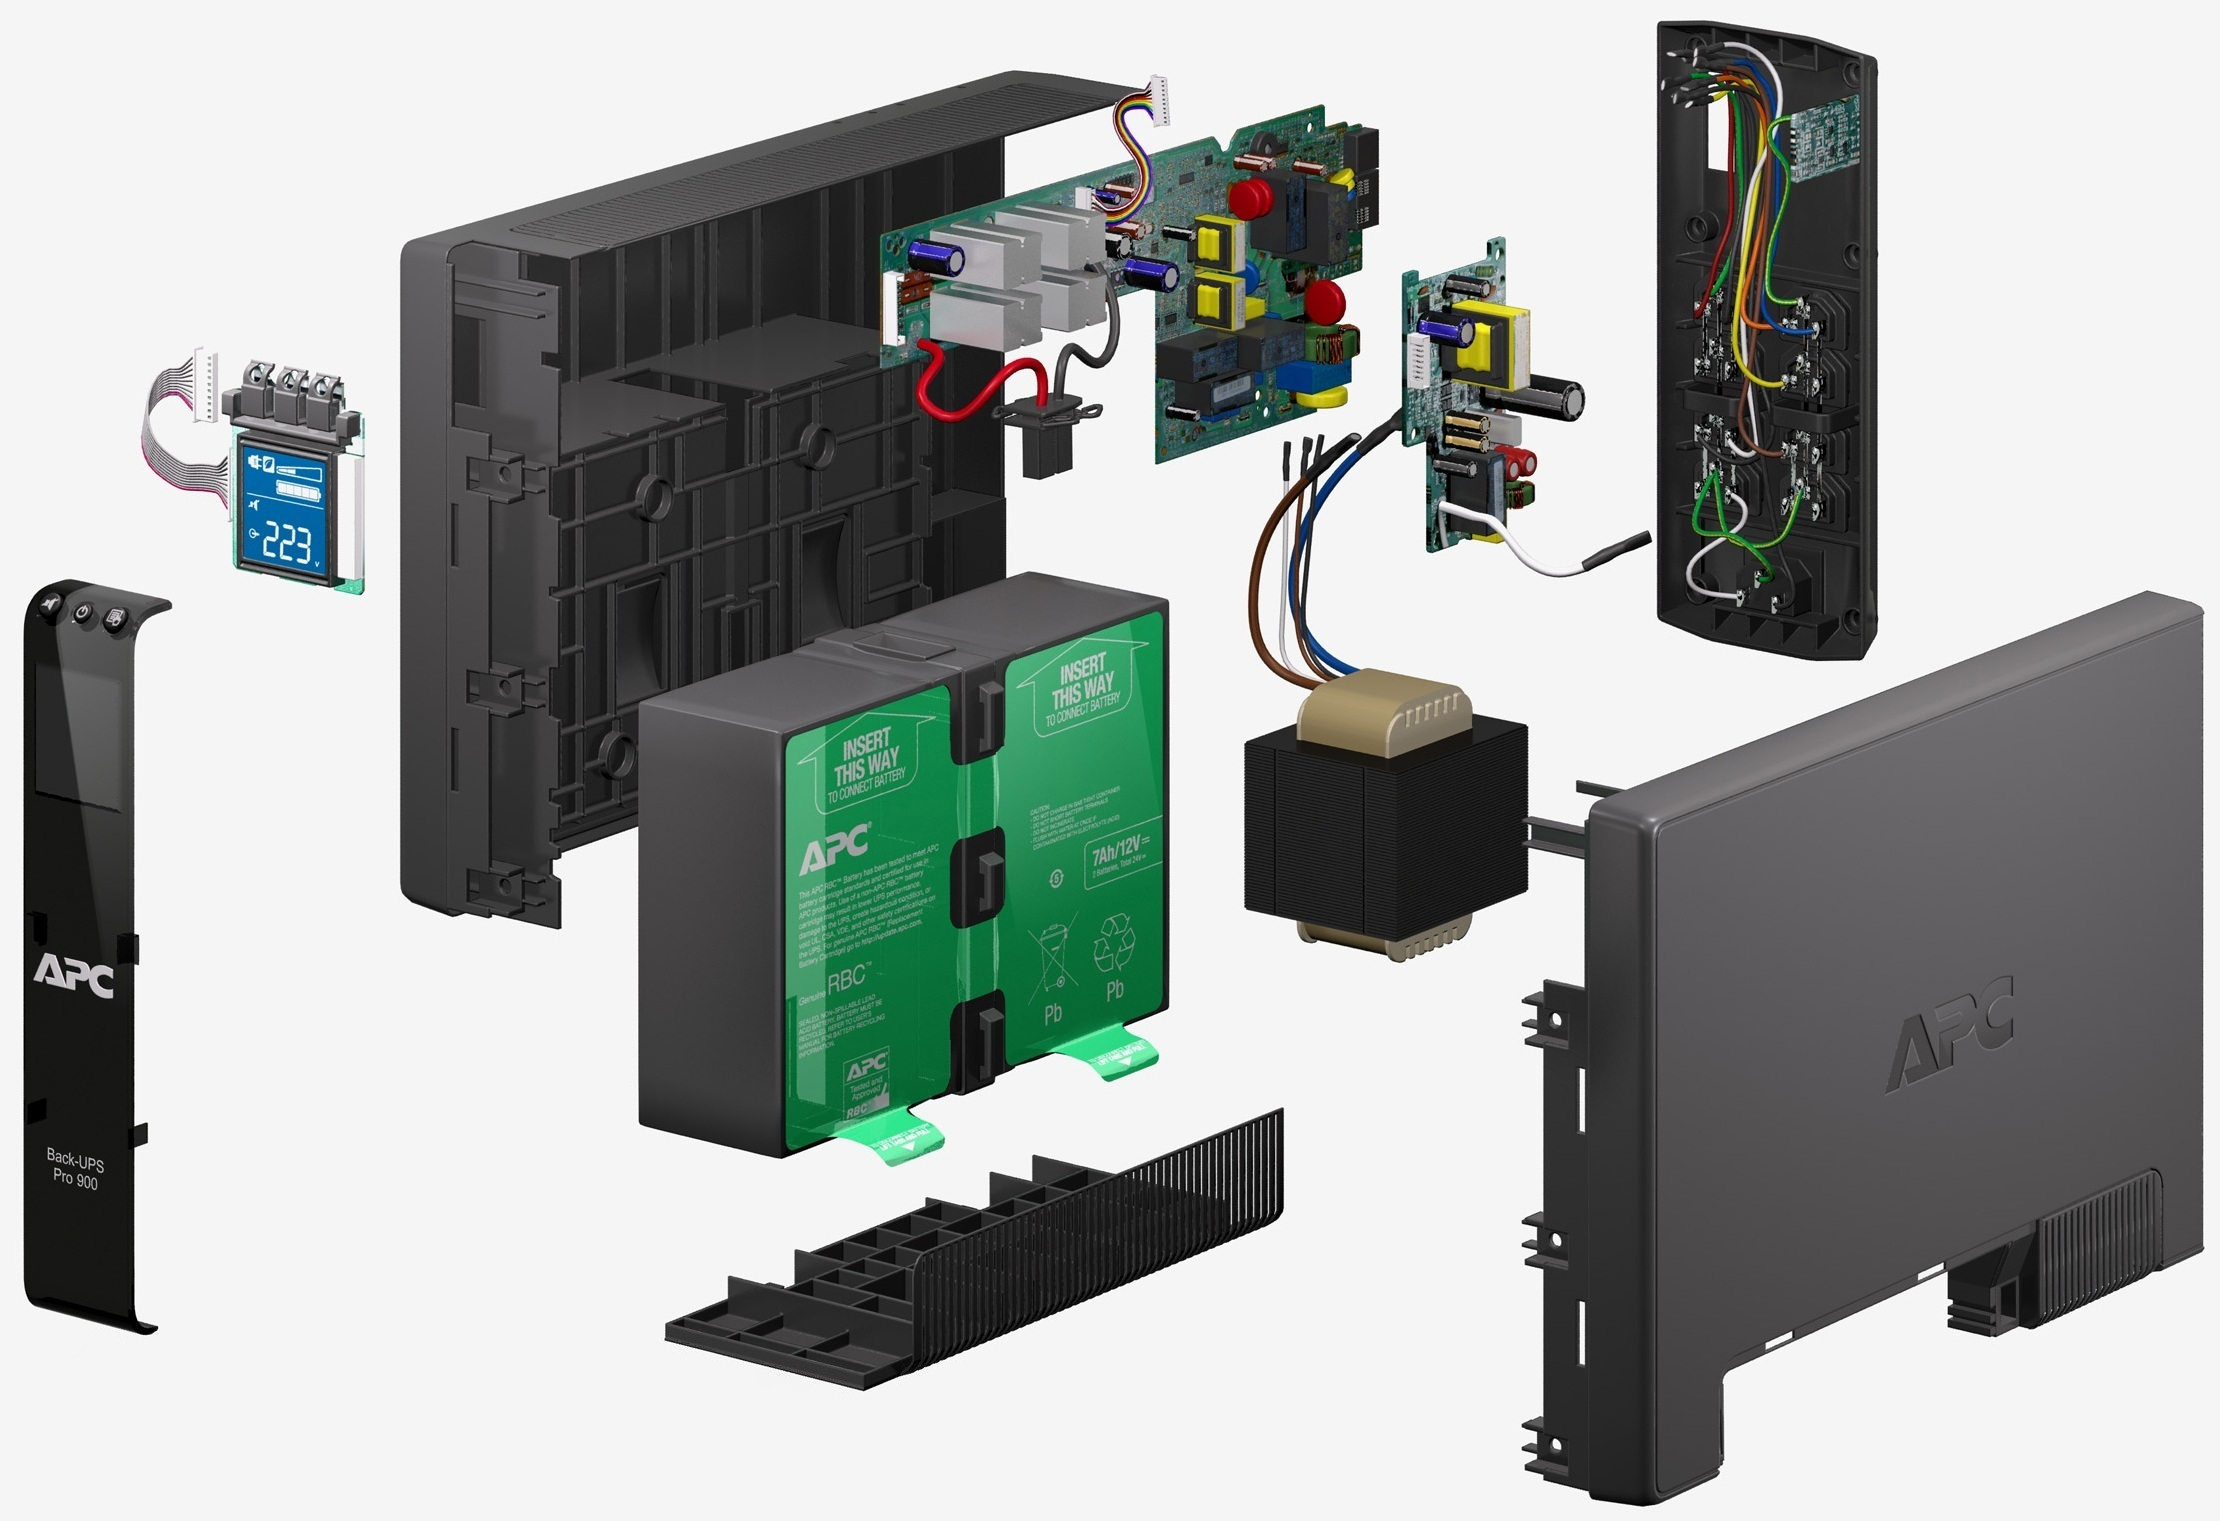 APC by Schneider Electric Back-UPS Pro BR900GI-RS Exploded View